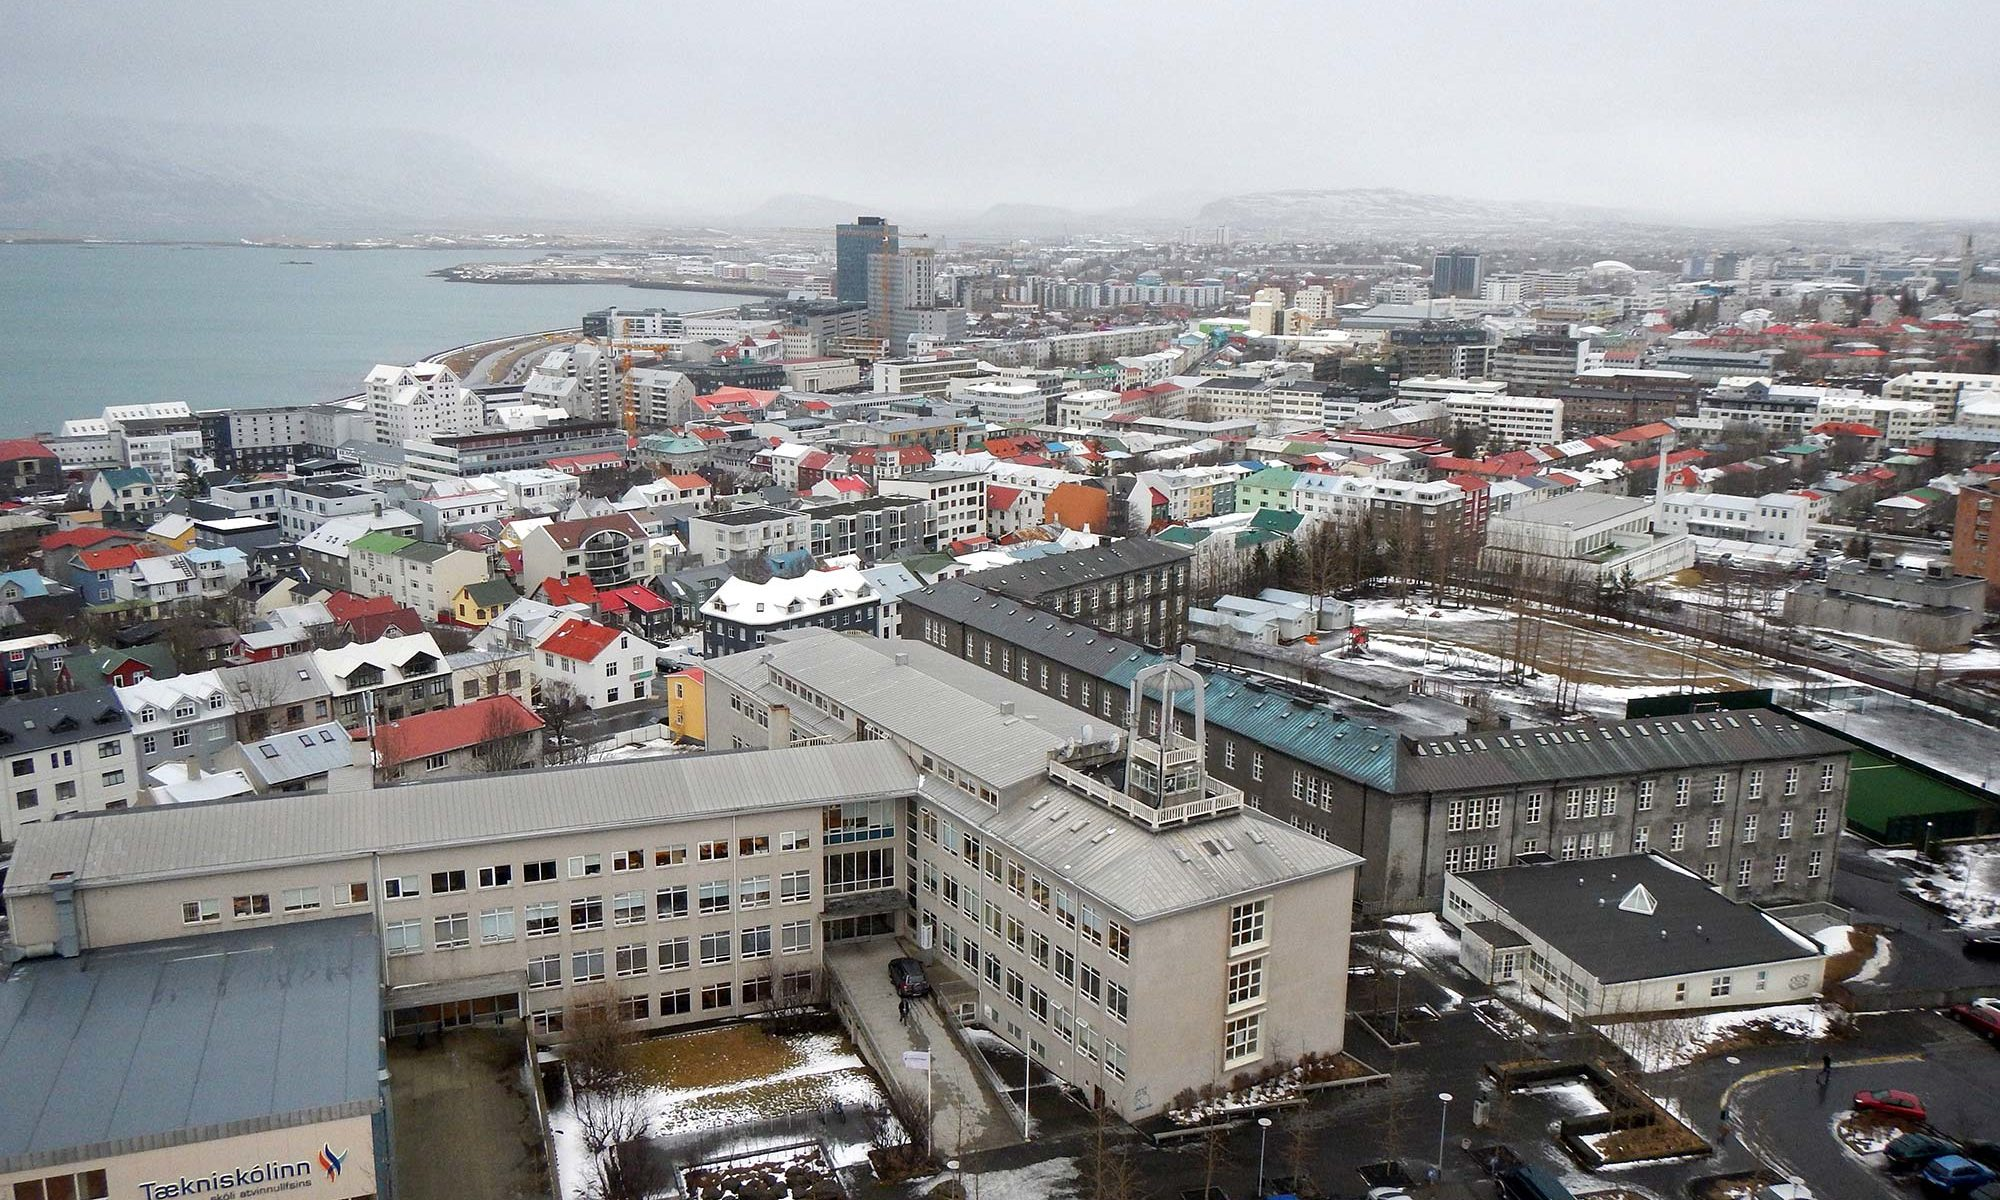 Image of Reykjavik from Hallgrimskirkja Church - Delightability